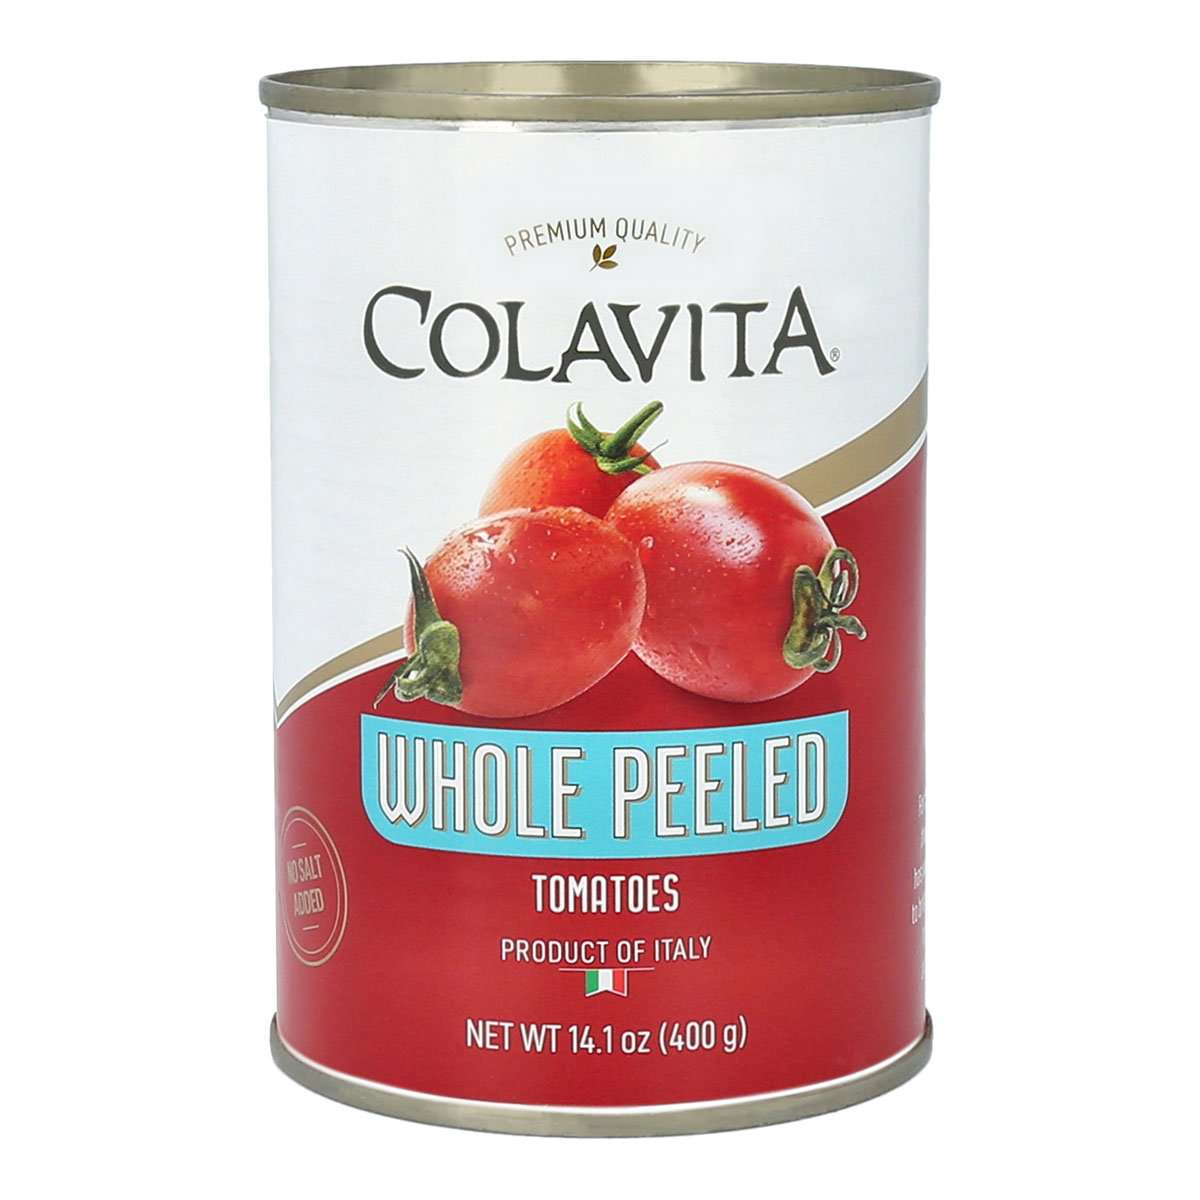 WHOLE PEELED CANNED TOMATOES – 14.1OZ – COLAVITA – PREMIUM TOMATOES FOR SAUCES AND GRAVY – IMPORTED FROM ITALY